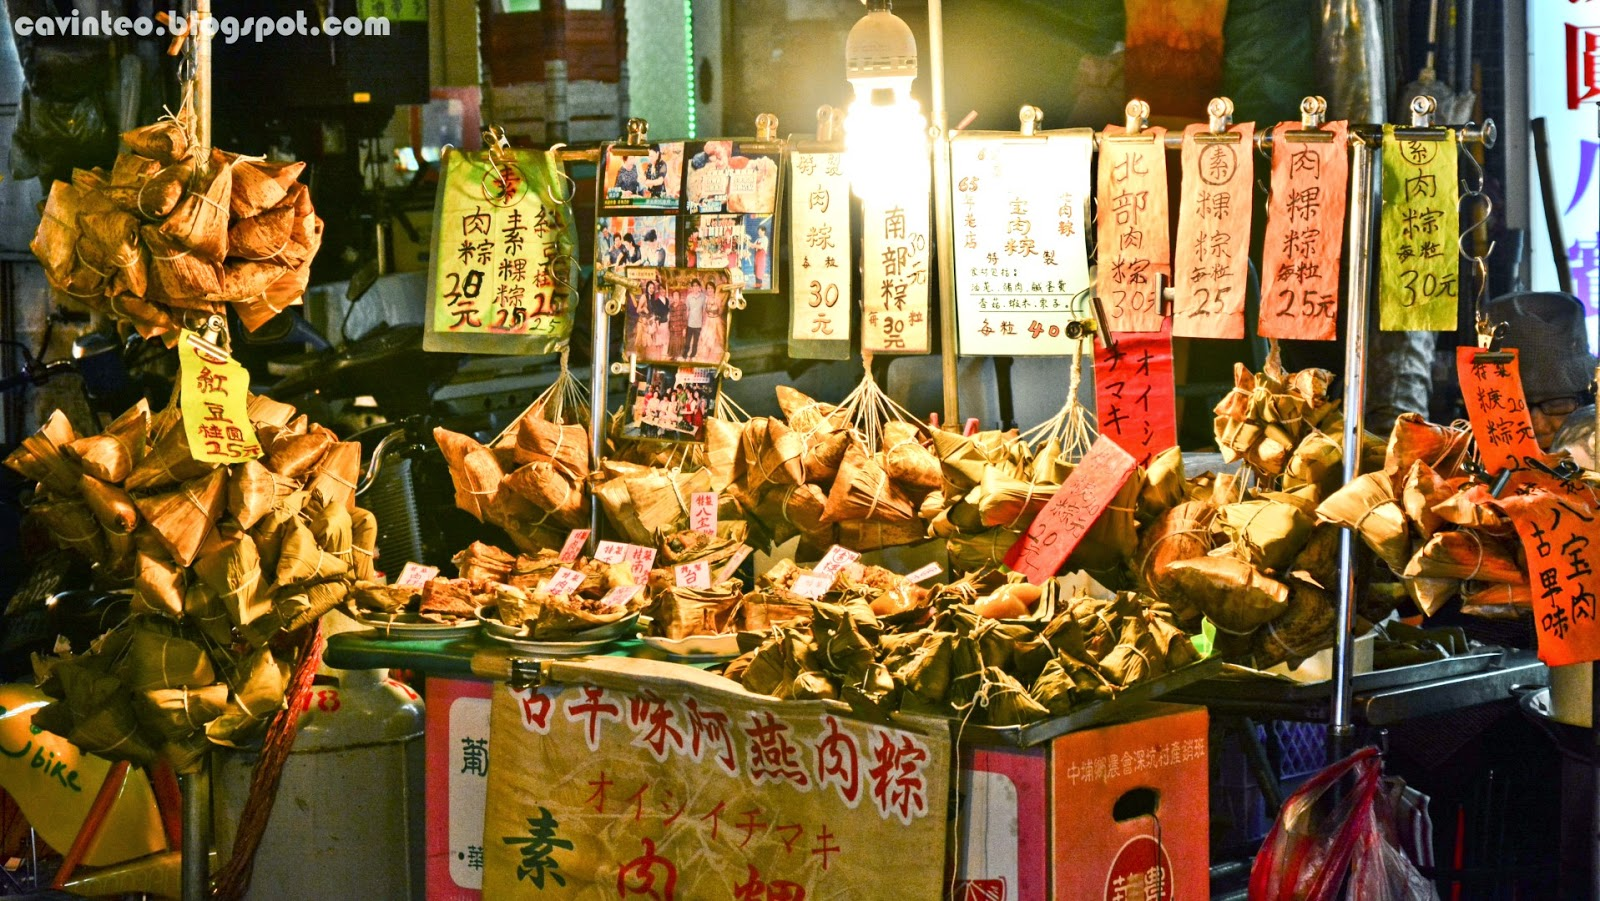 Longshan temple night market